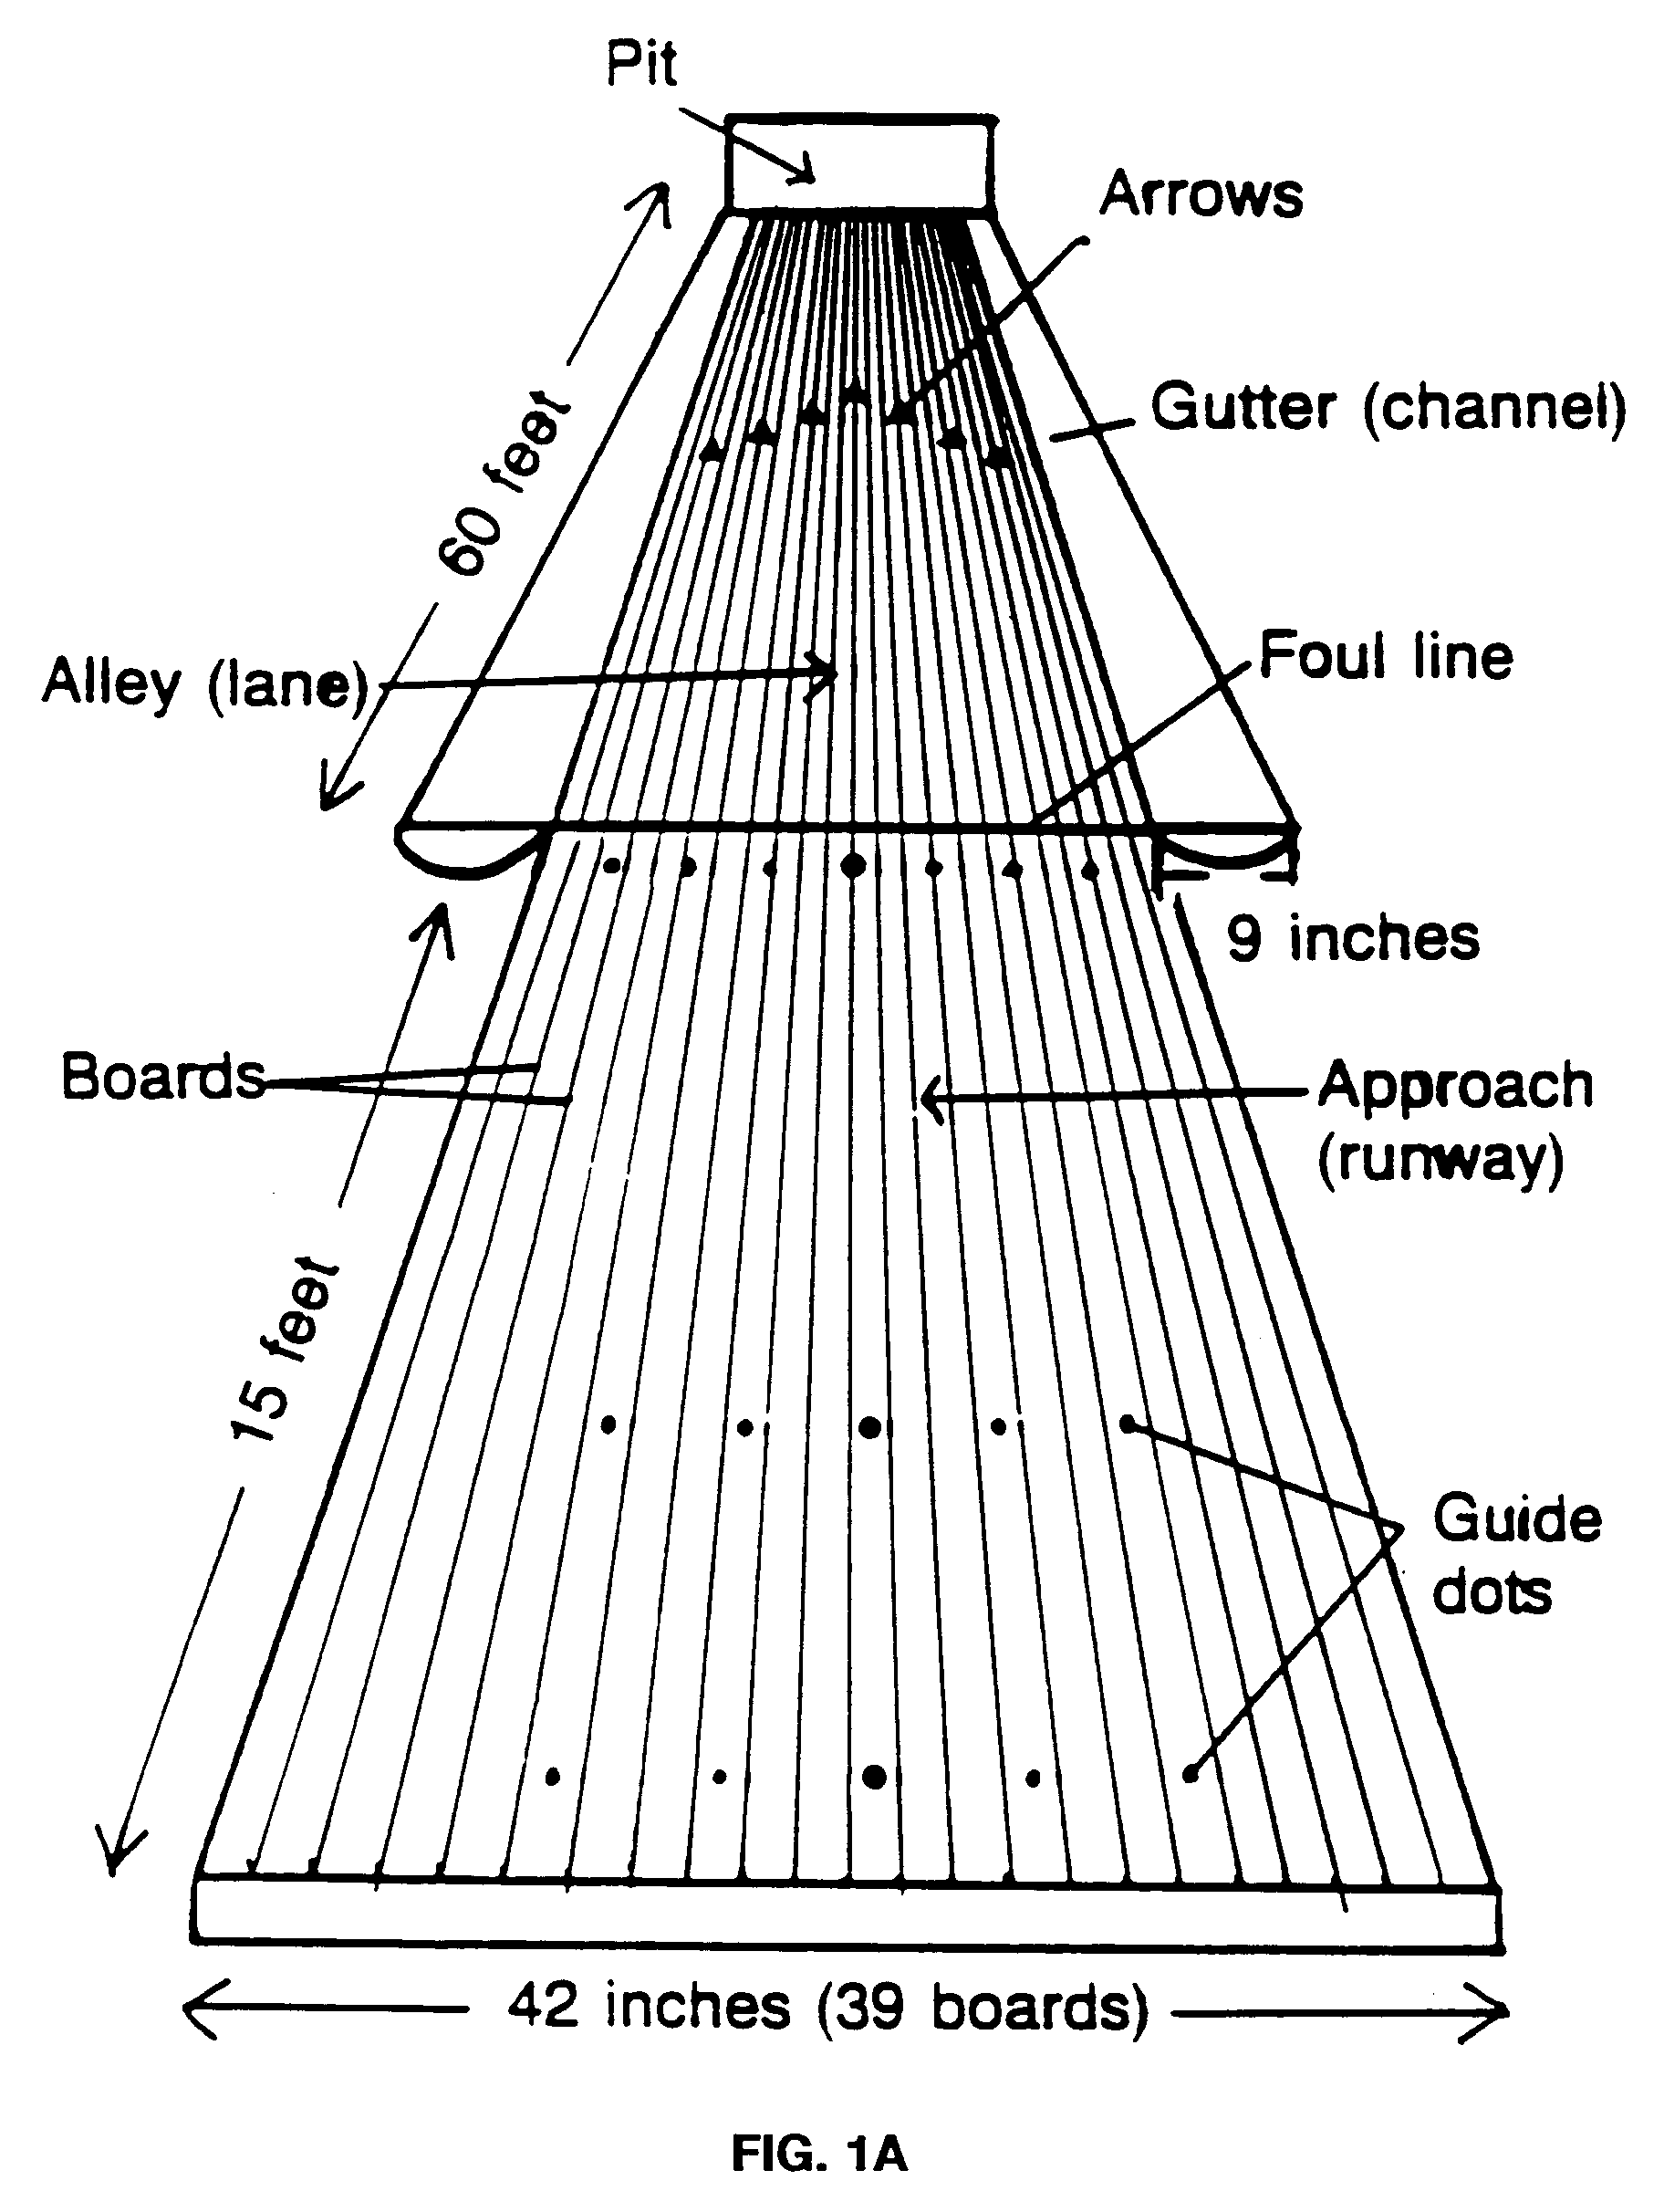 pin and bowling lane diagram